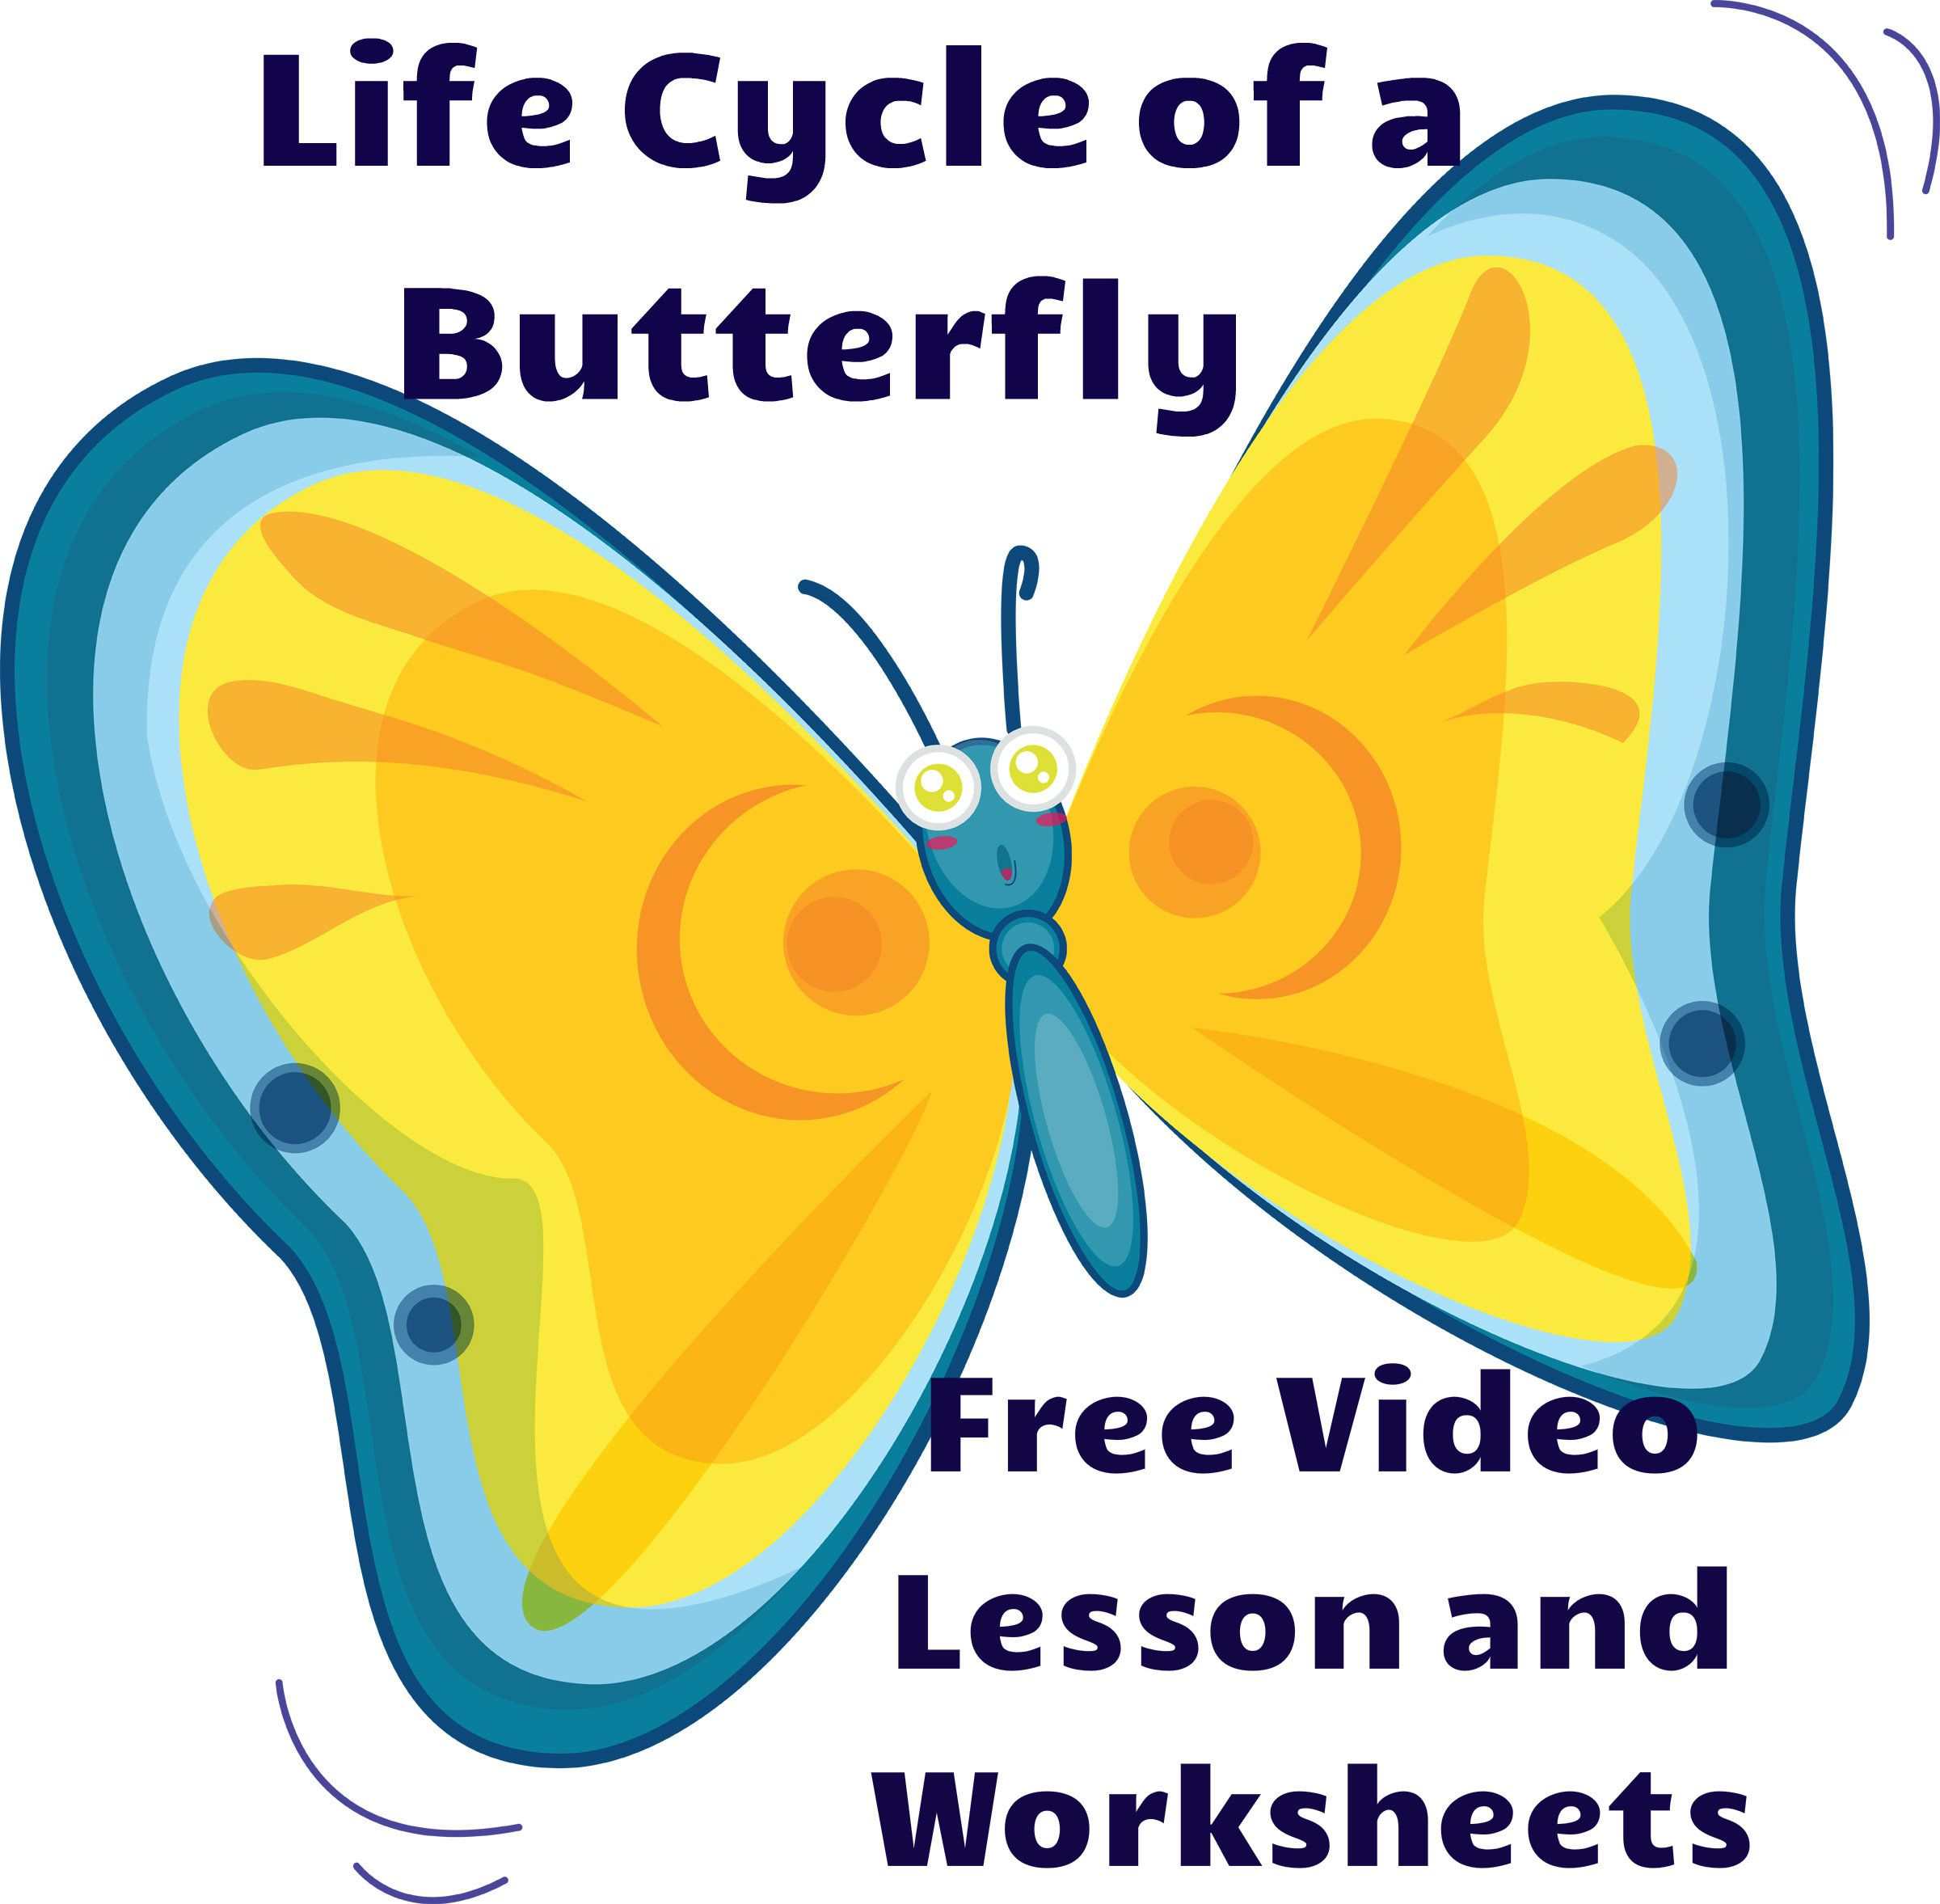 worksheet Life Cycle Of Plants And Animals Worksheets life cycle of a butterfly free video lesson and worksheets observe describe major stages in the cycles plants animals including beans butterflies butterfly